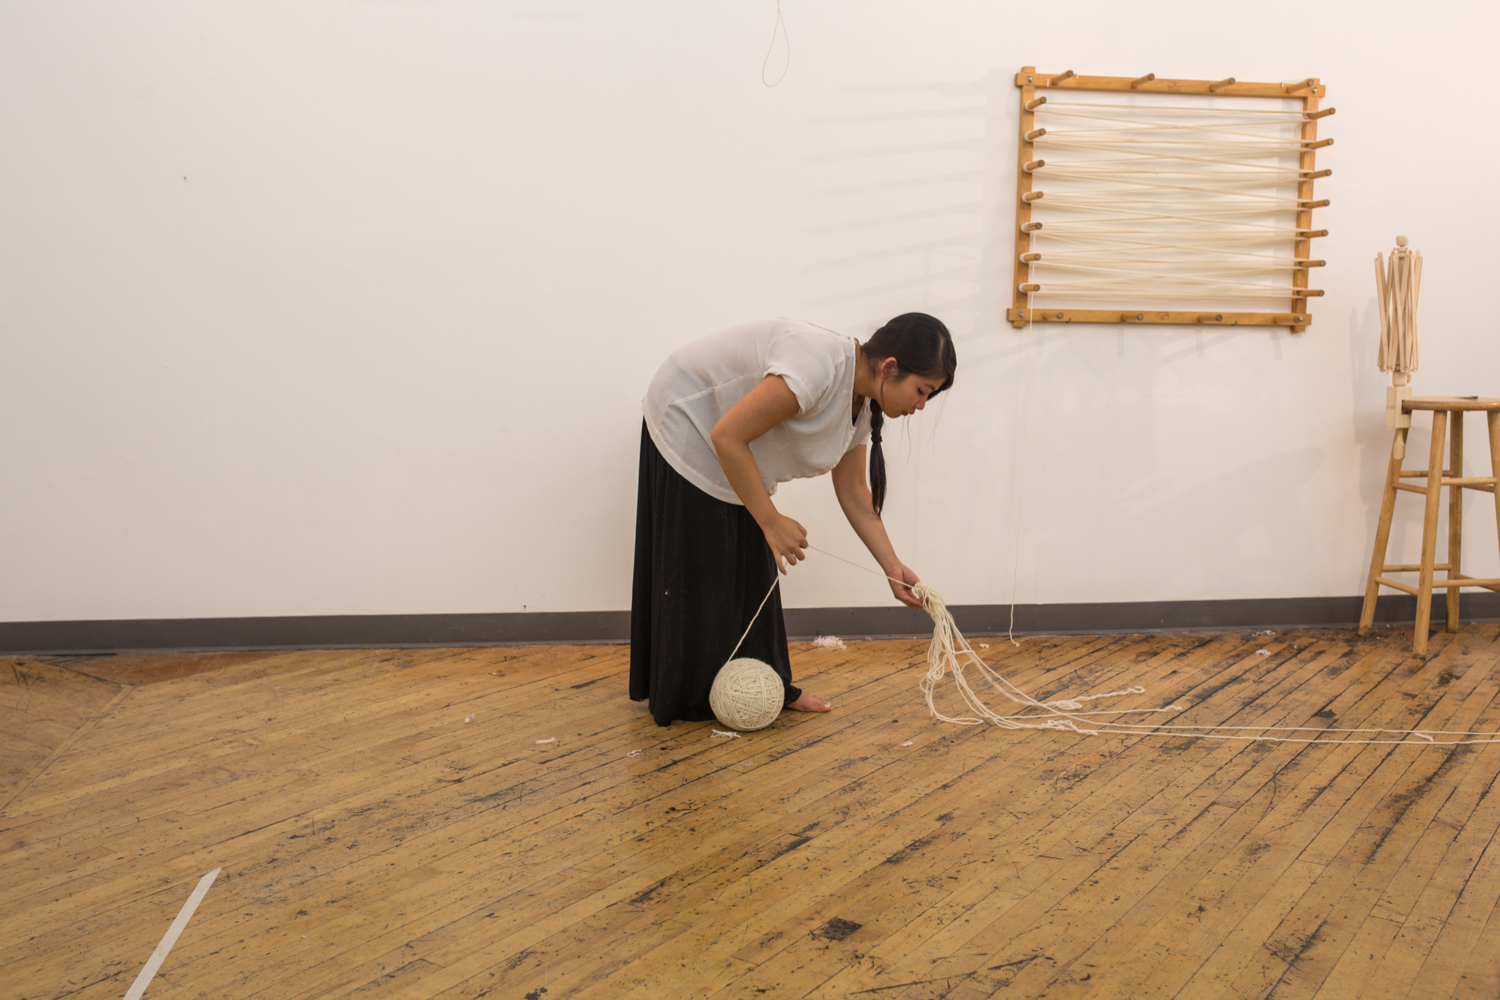 The artist bends down and focuses on a knot.